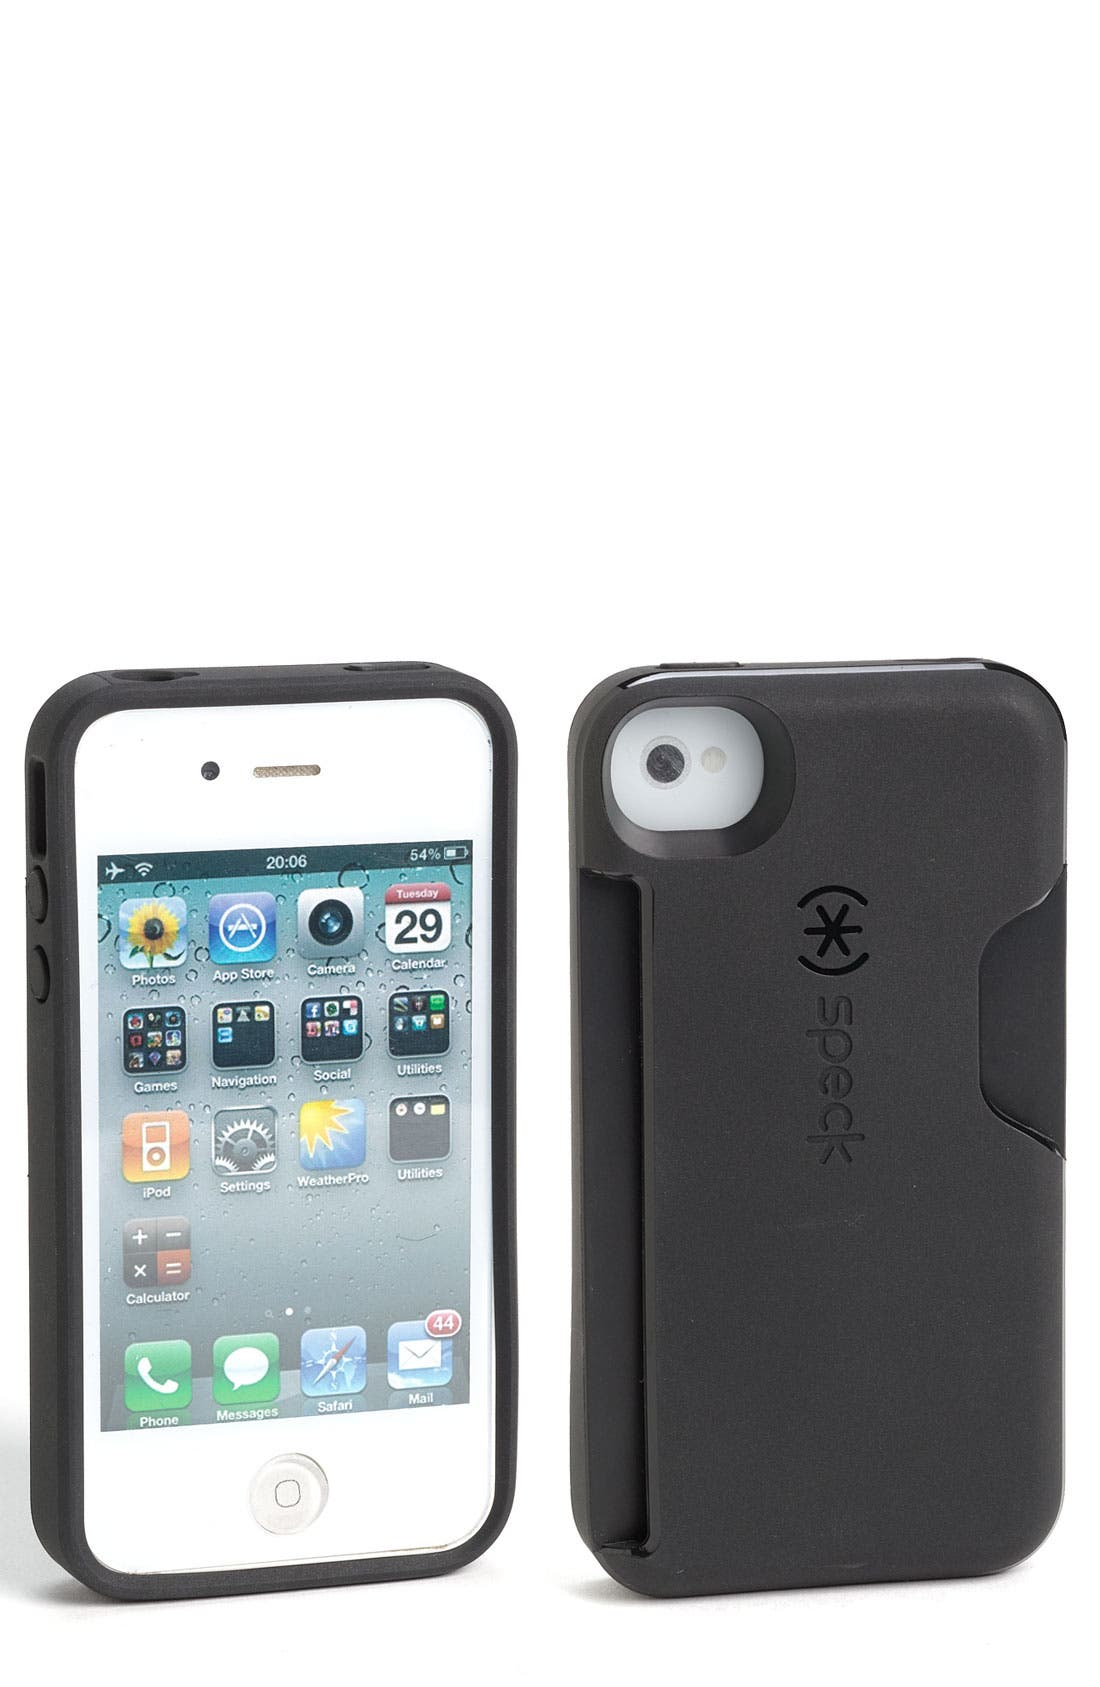 Main Image - Speck 'Smartflex' iPhone Case